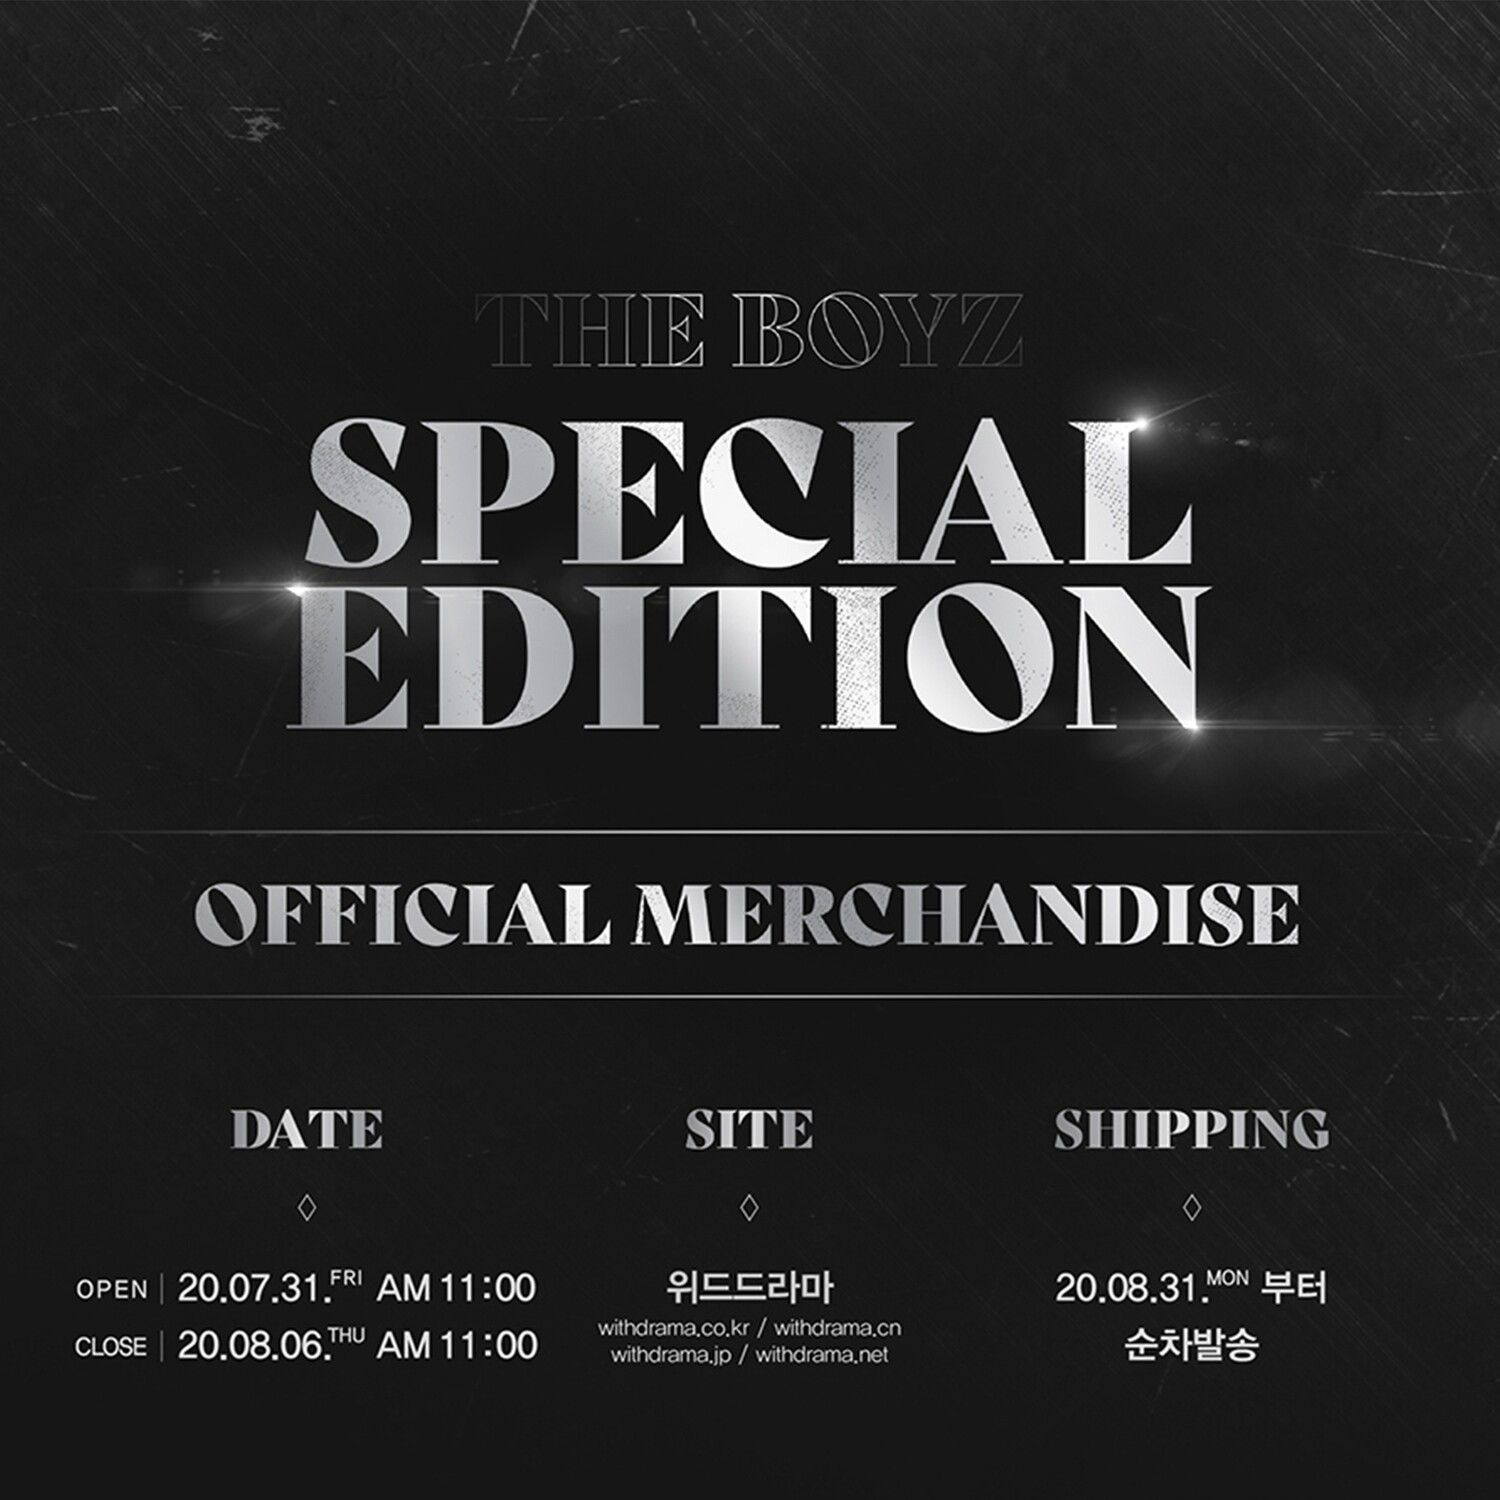 The Boyz - Special Edition Merchandise